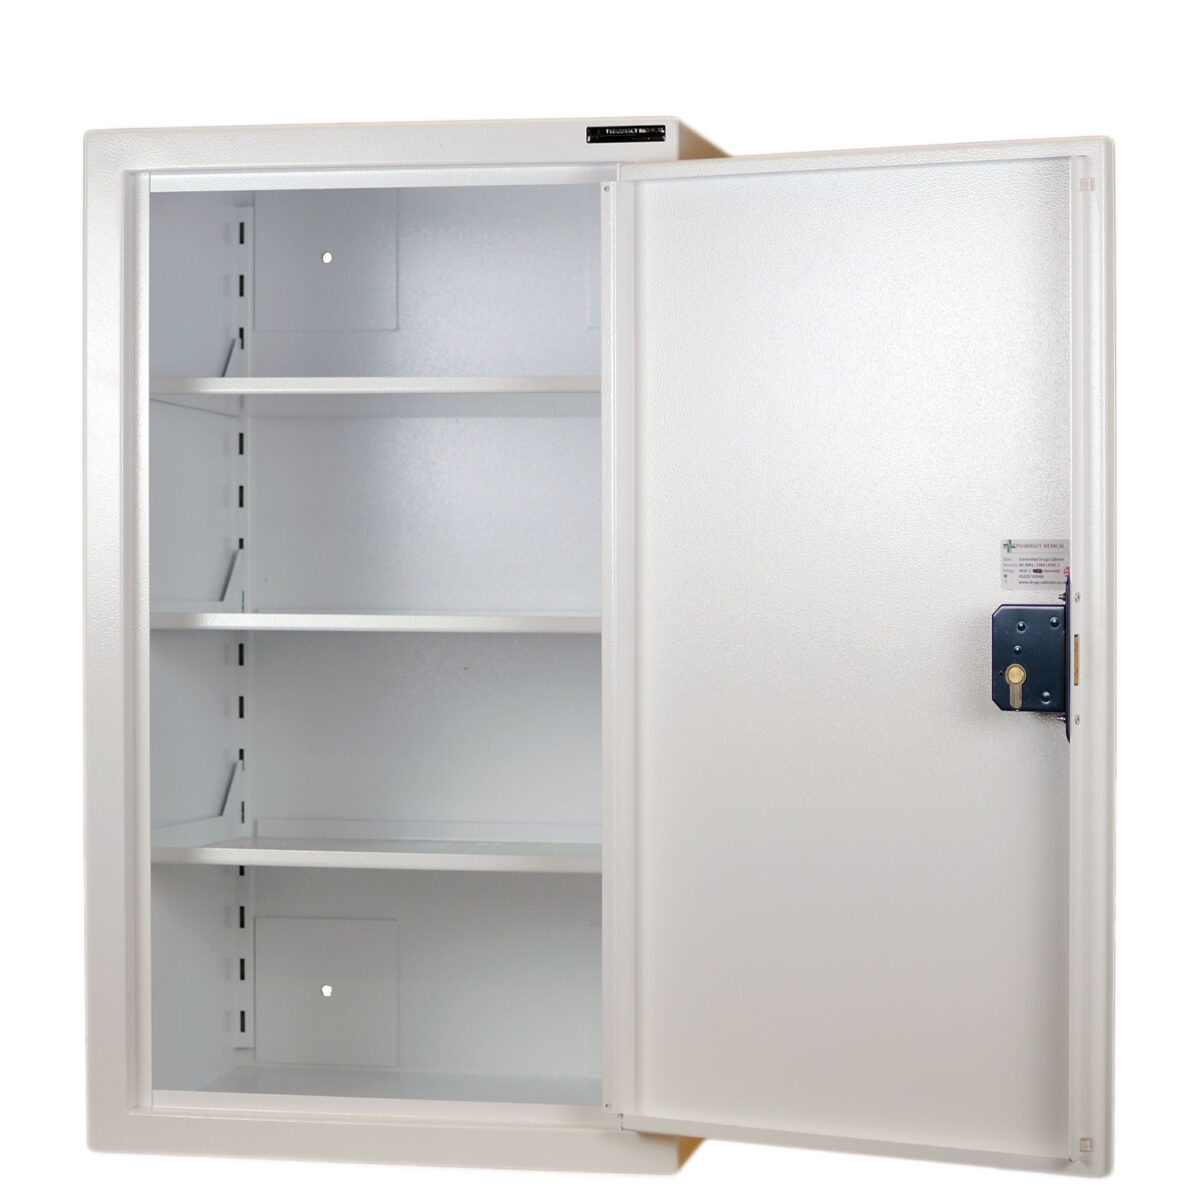 HECDC1030 Controlled drugs cabinet